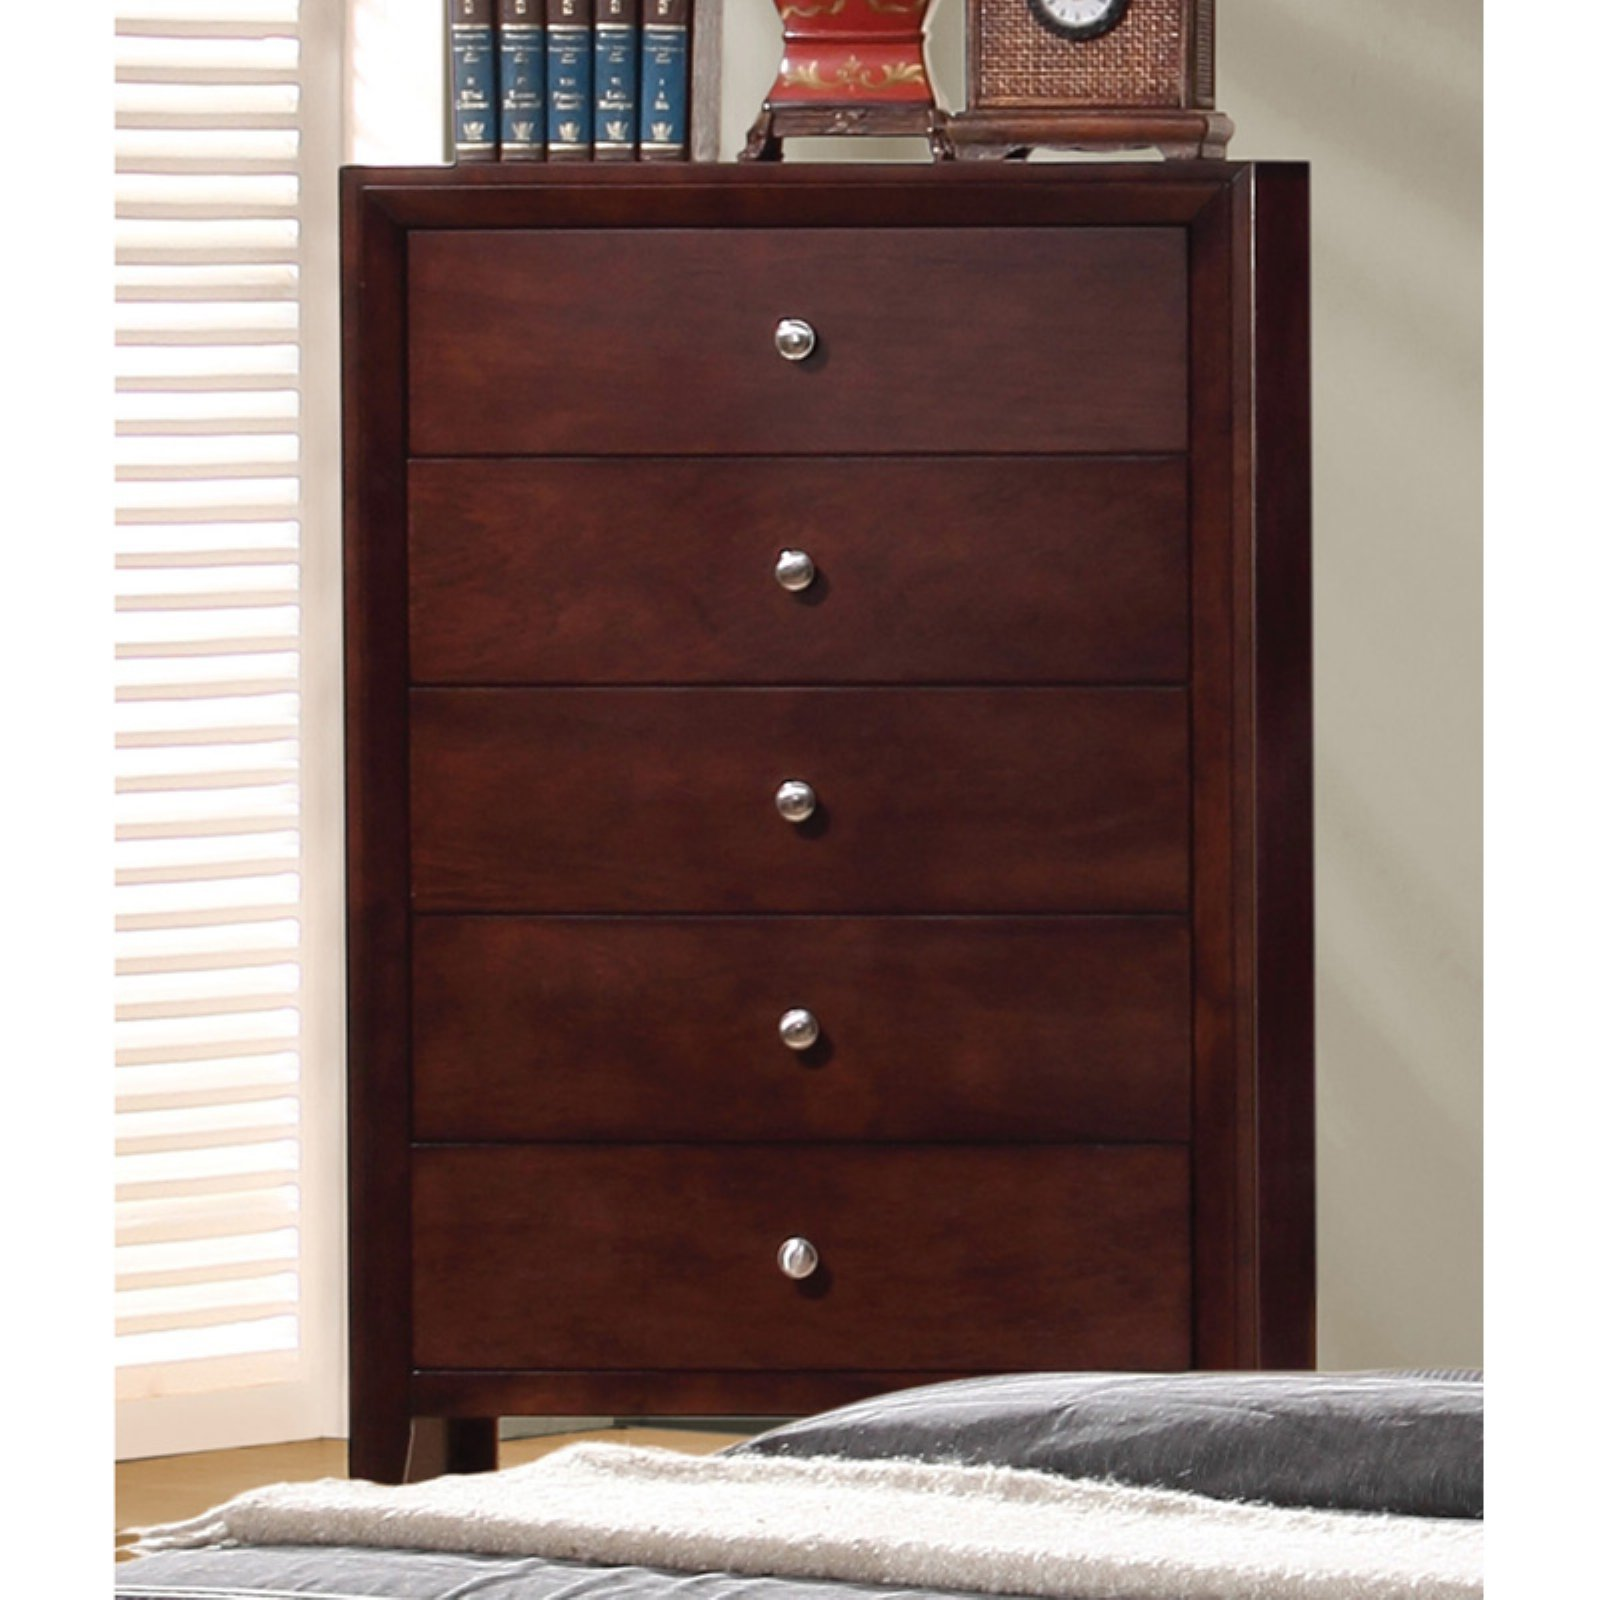 Coaster Company Serenity Collection 5 Drawer Chest, Merlot